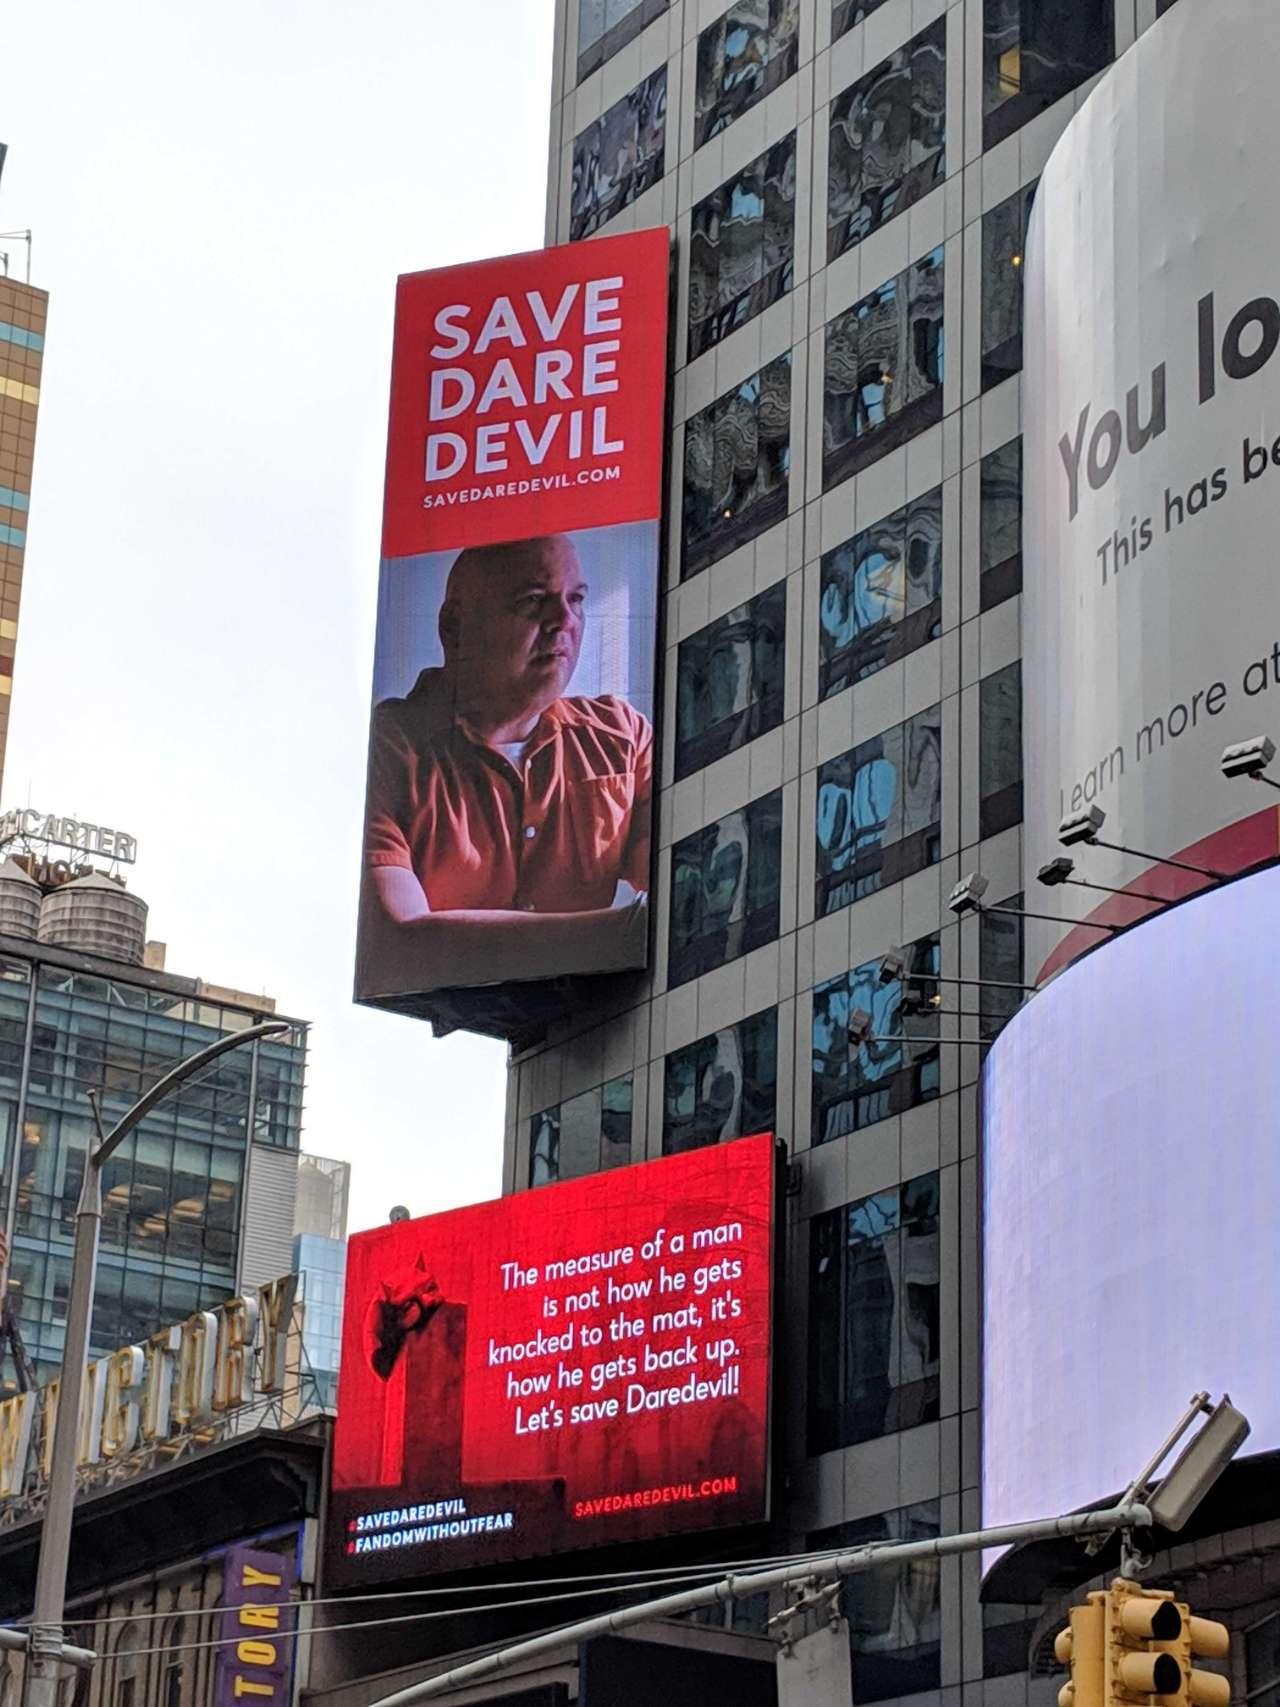 save-daredevil-billboard-2